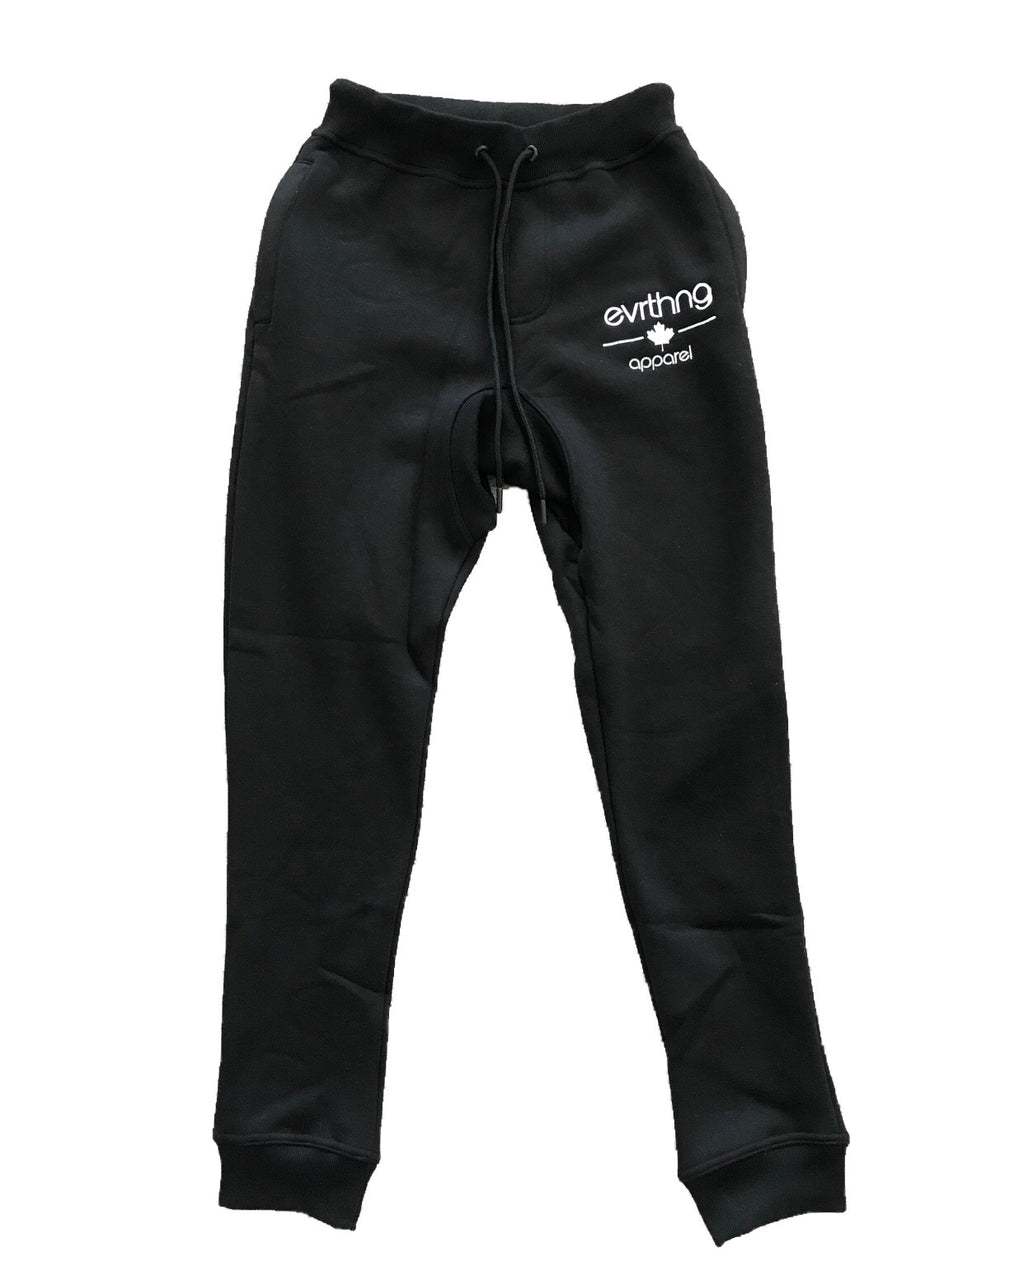 Evrthng Apparel Joggers